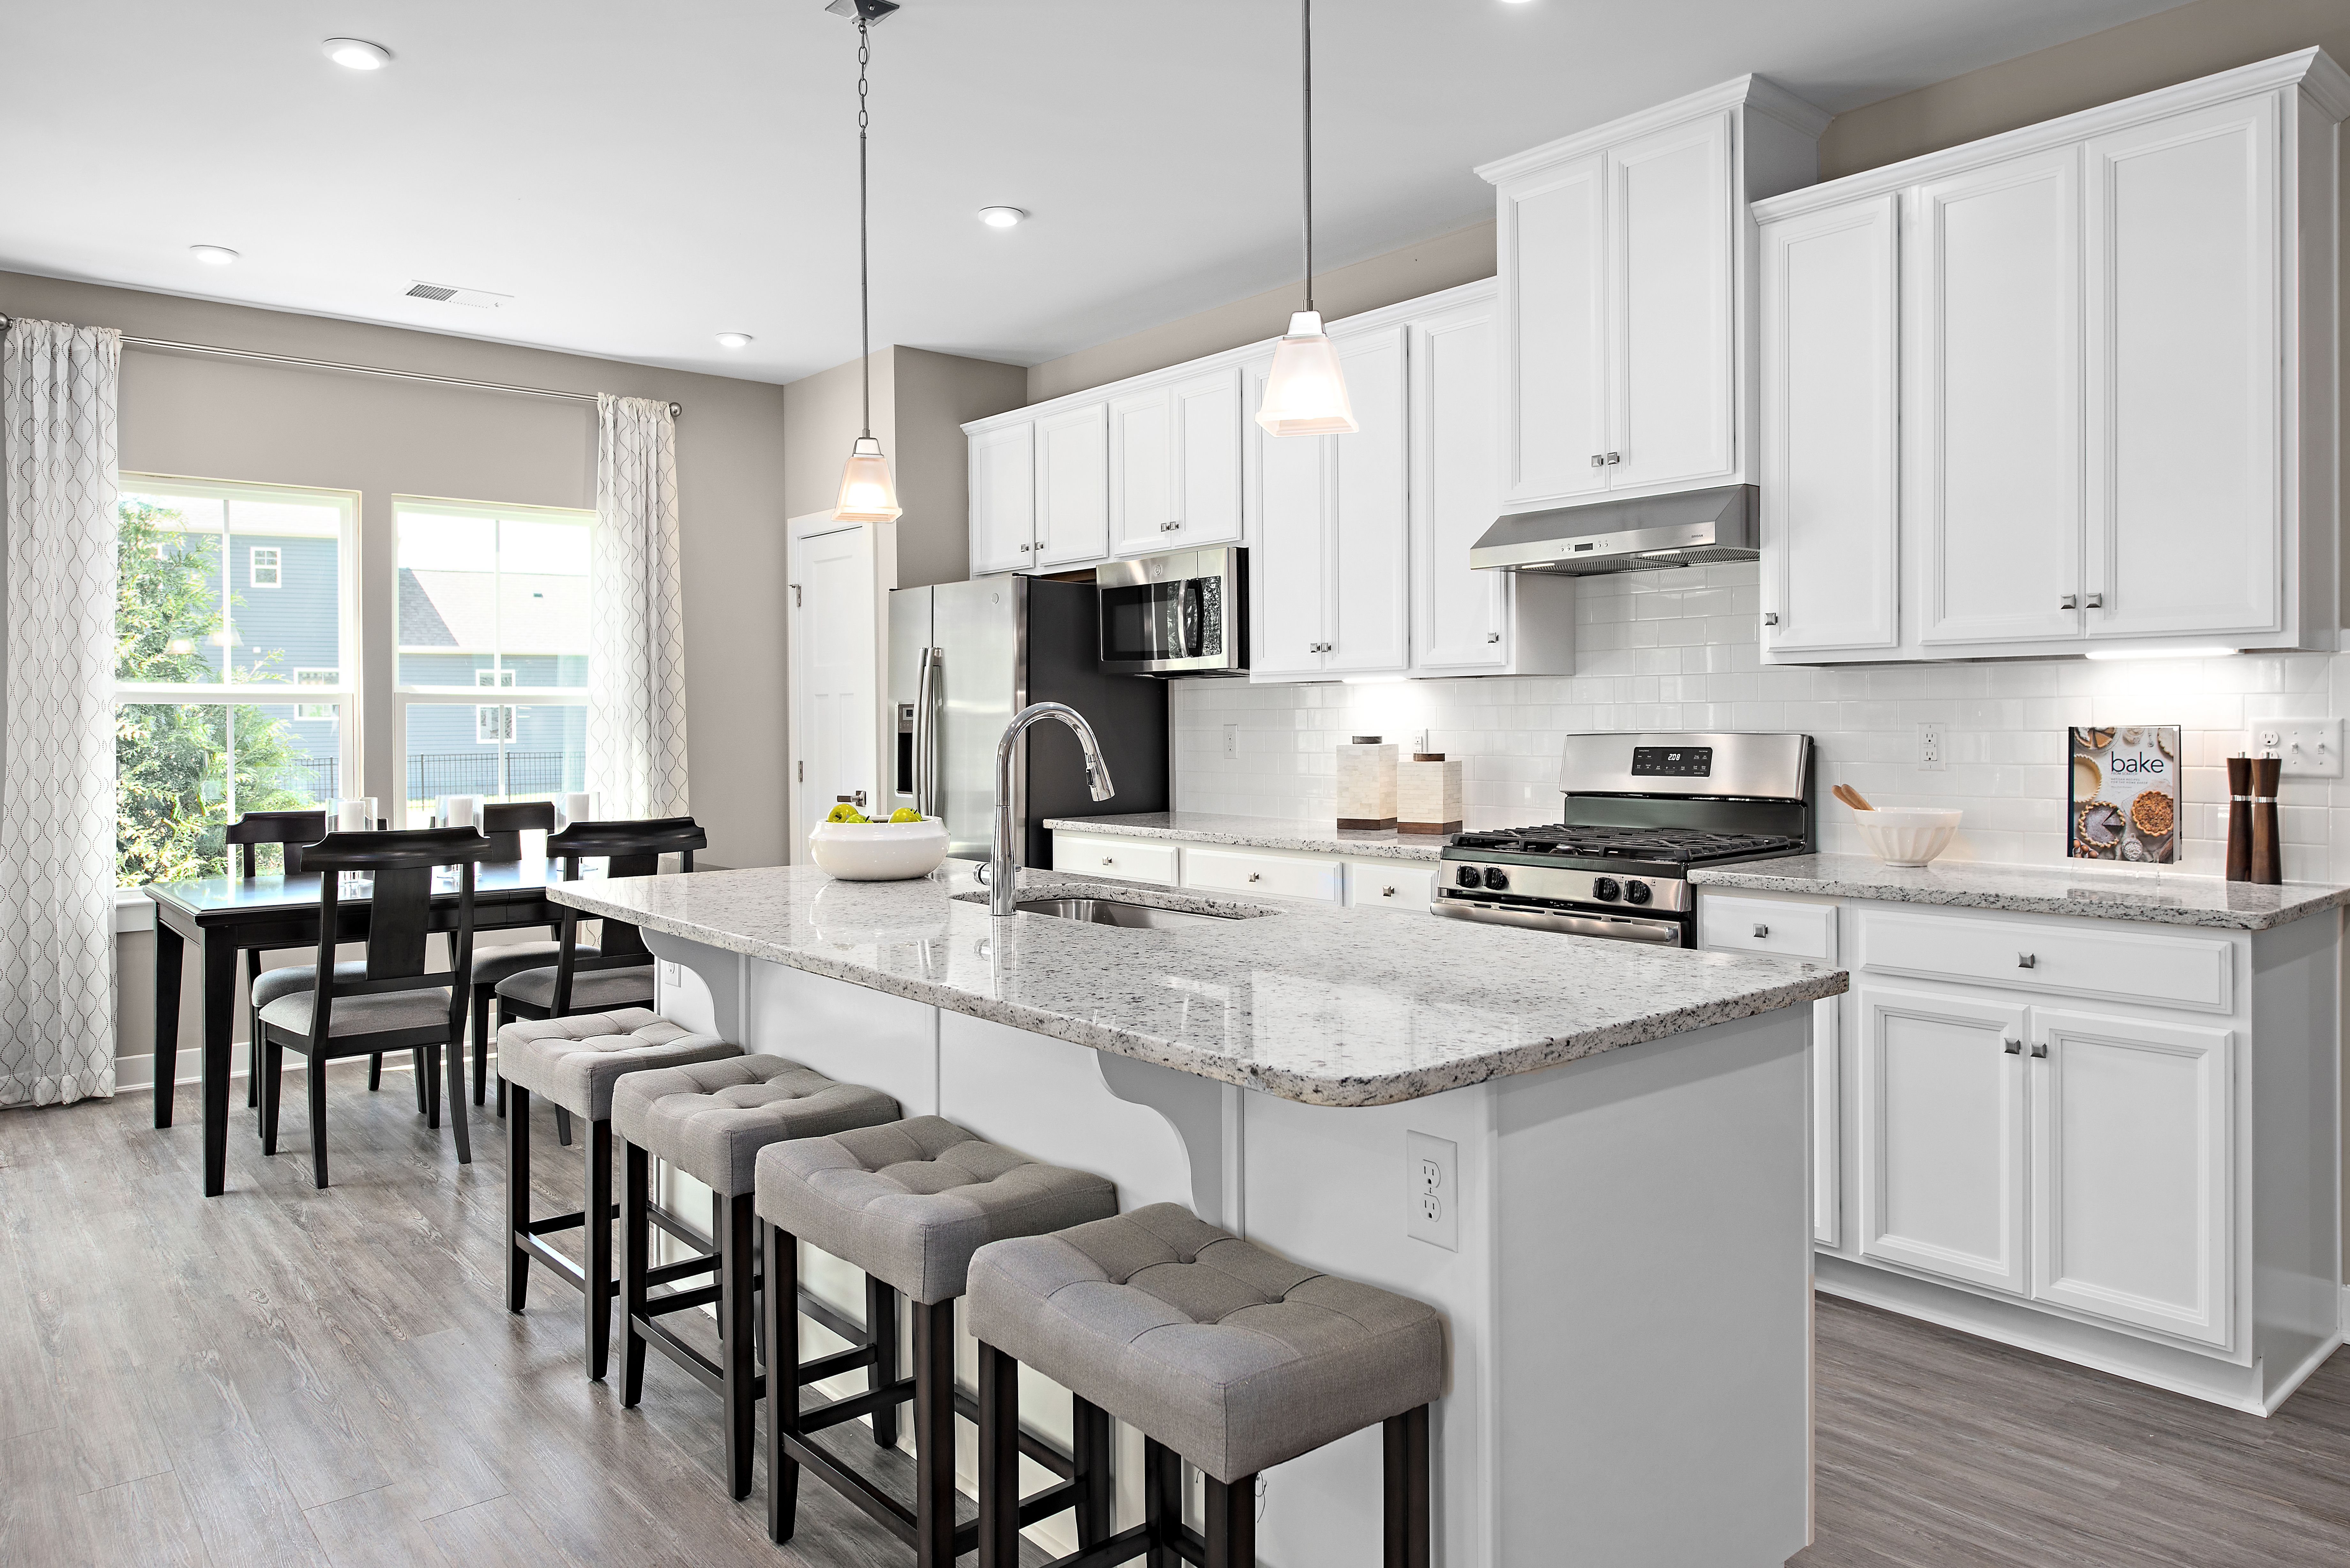 Kitchen featured in the Bramante 2 Story By Ryan Homes in Philadelphia, NJ